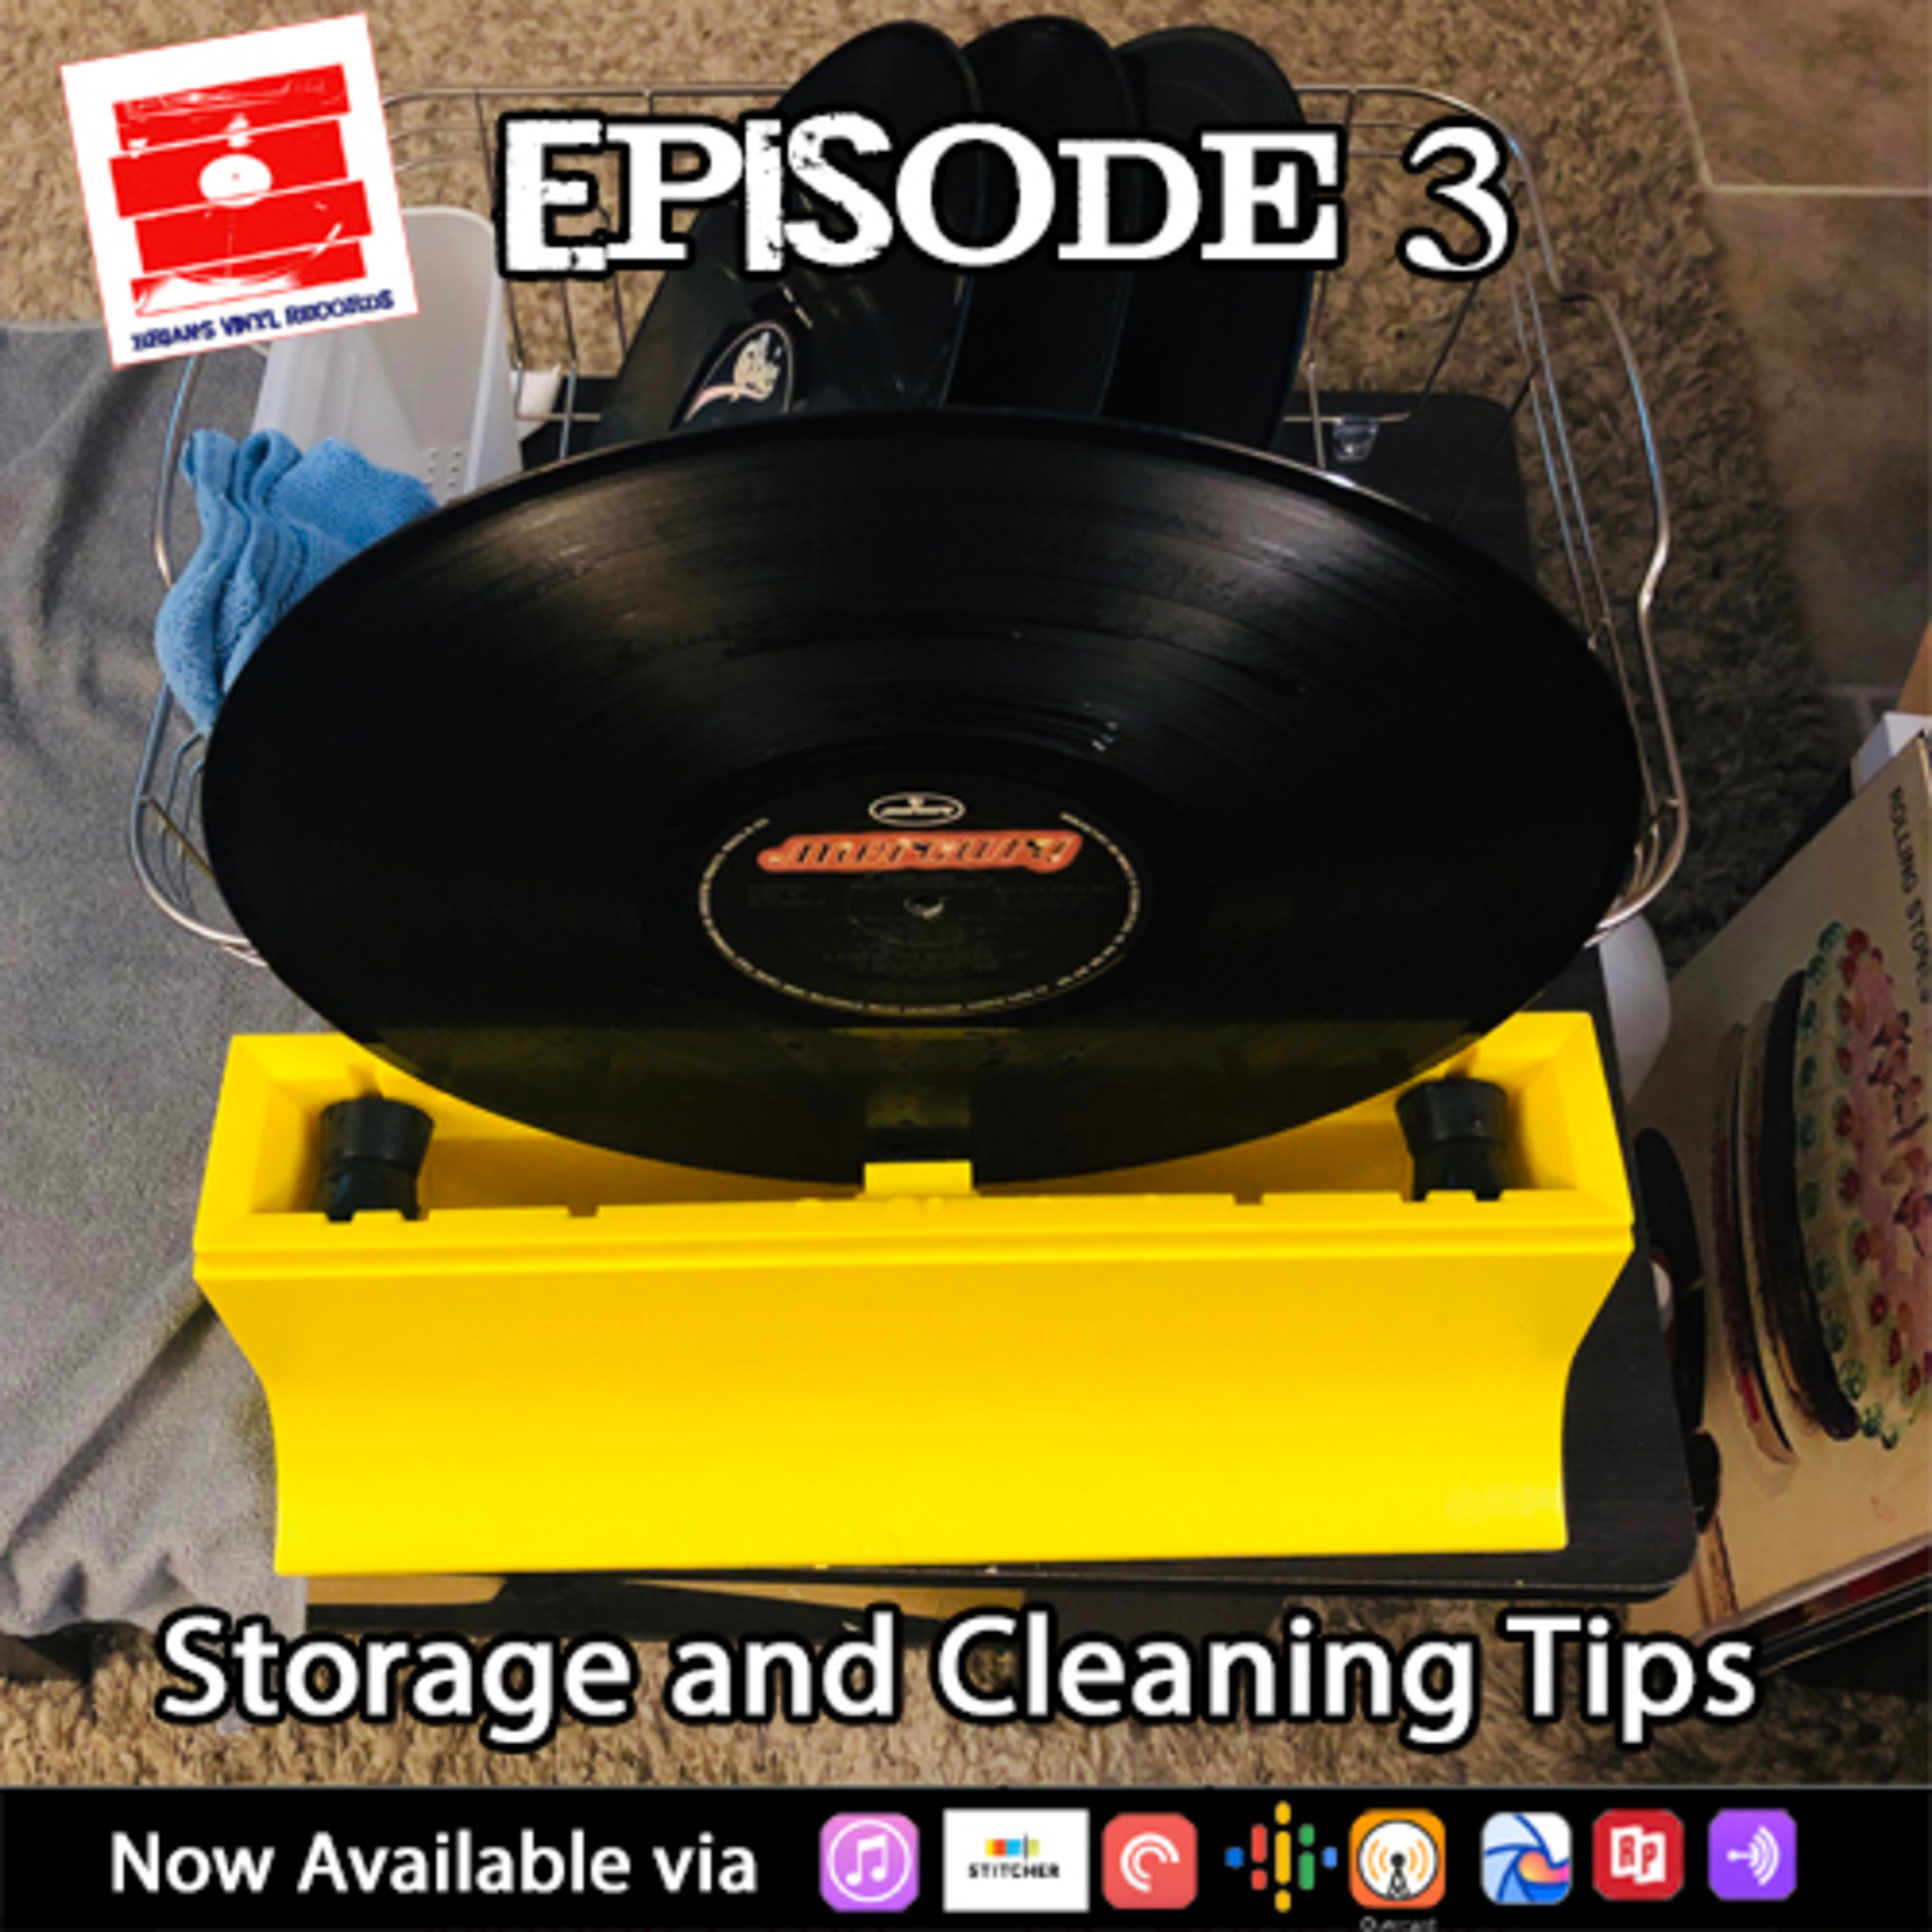 Vinyl Storage and Cleaning Tips